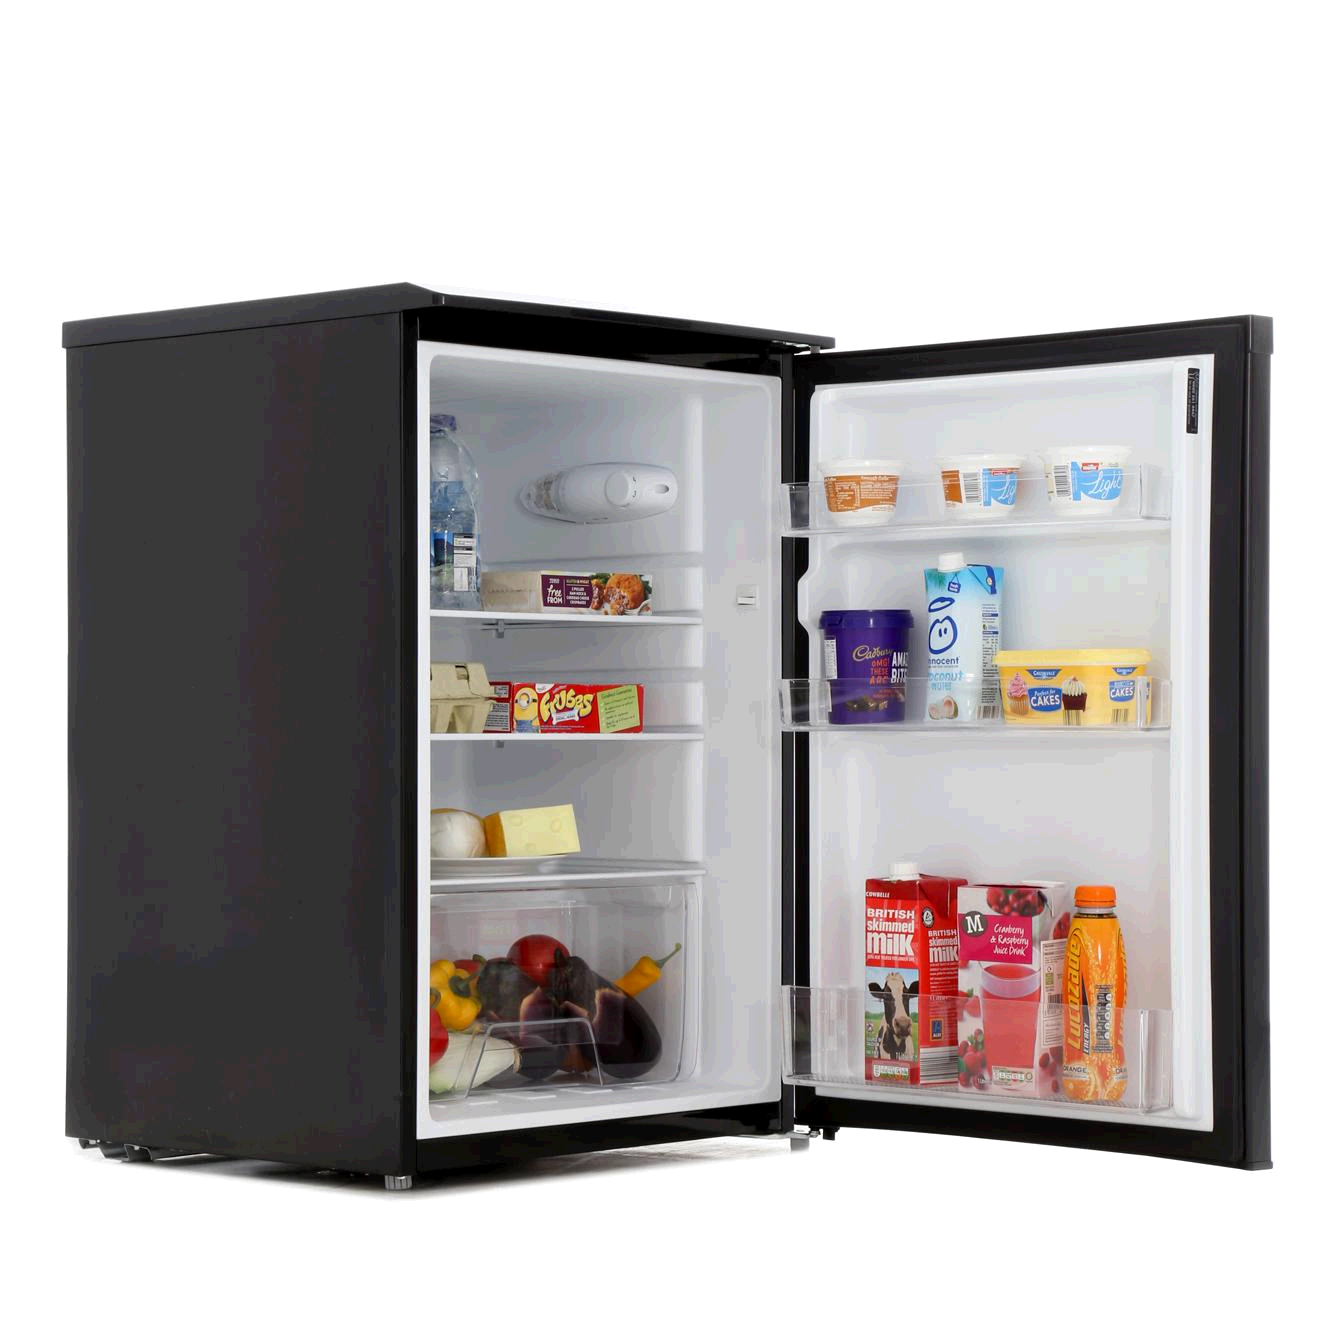 Lec Larder Fridge Under Counter Black H850 W545 D554